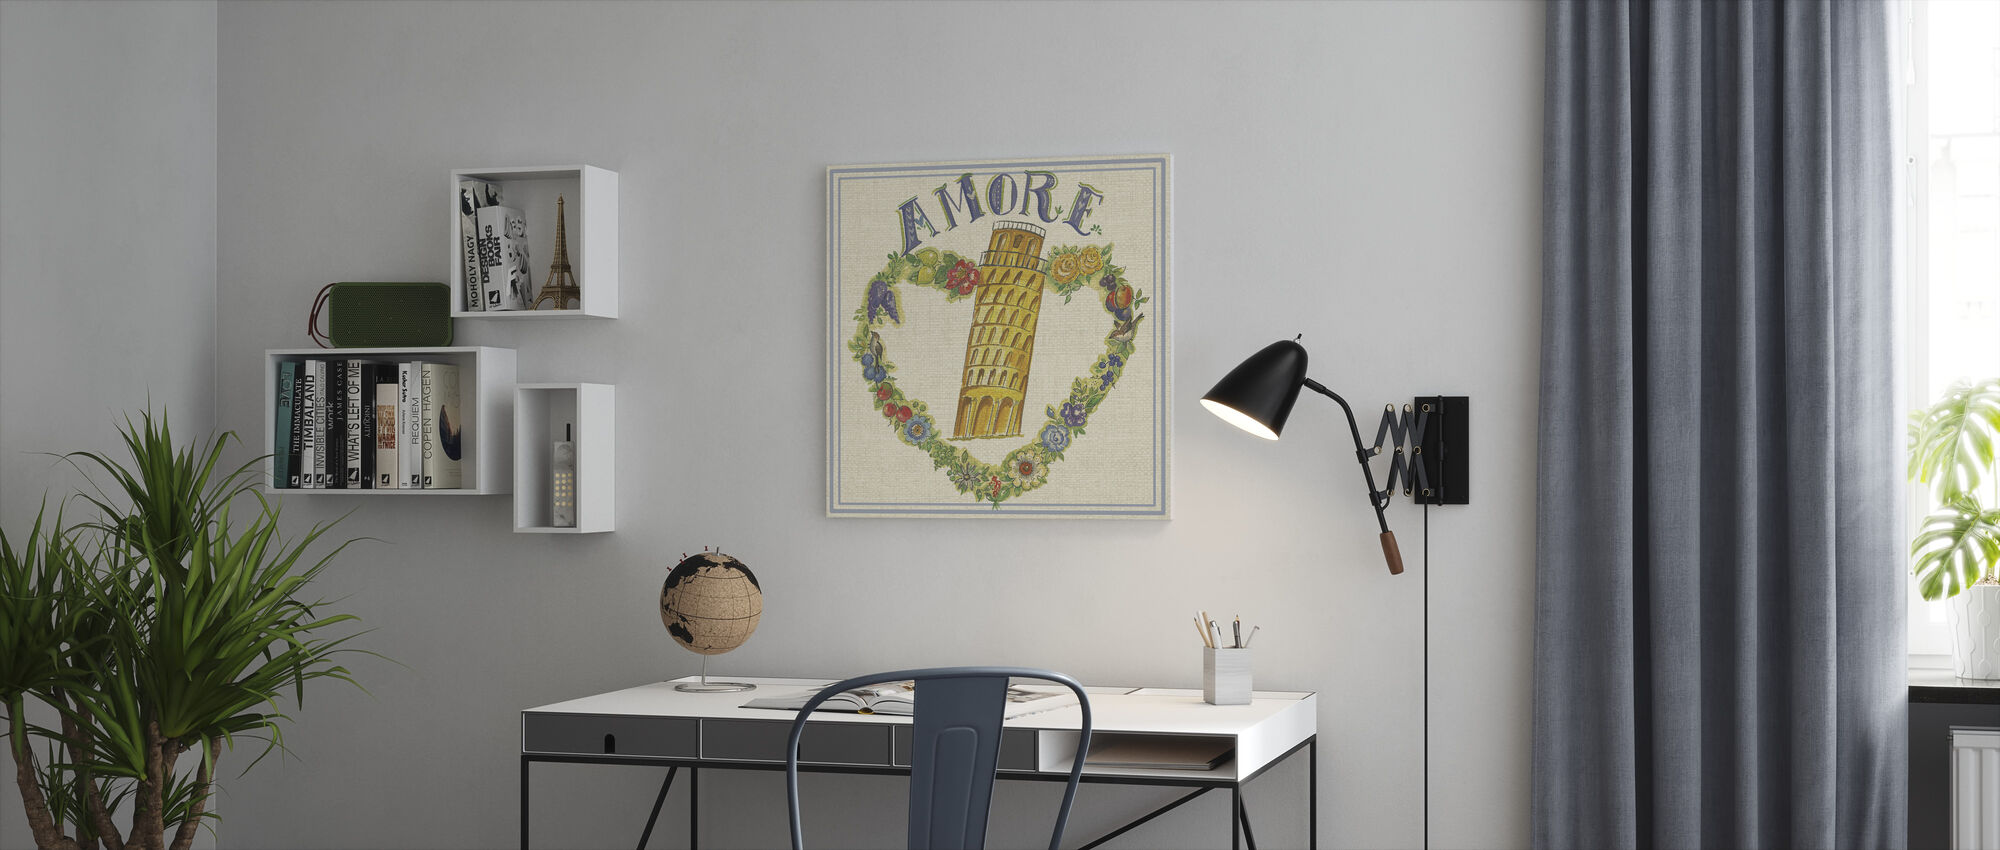 Travel Amore - Canvas print - Office